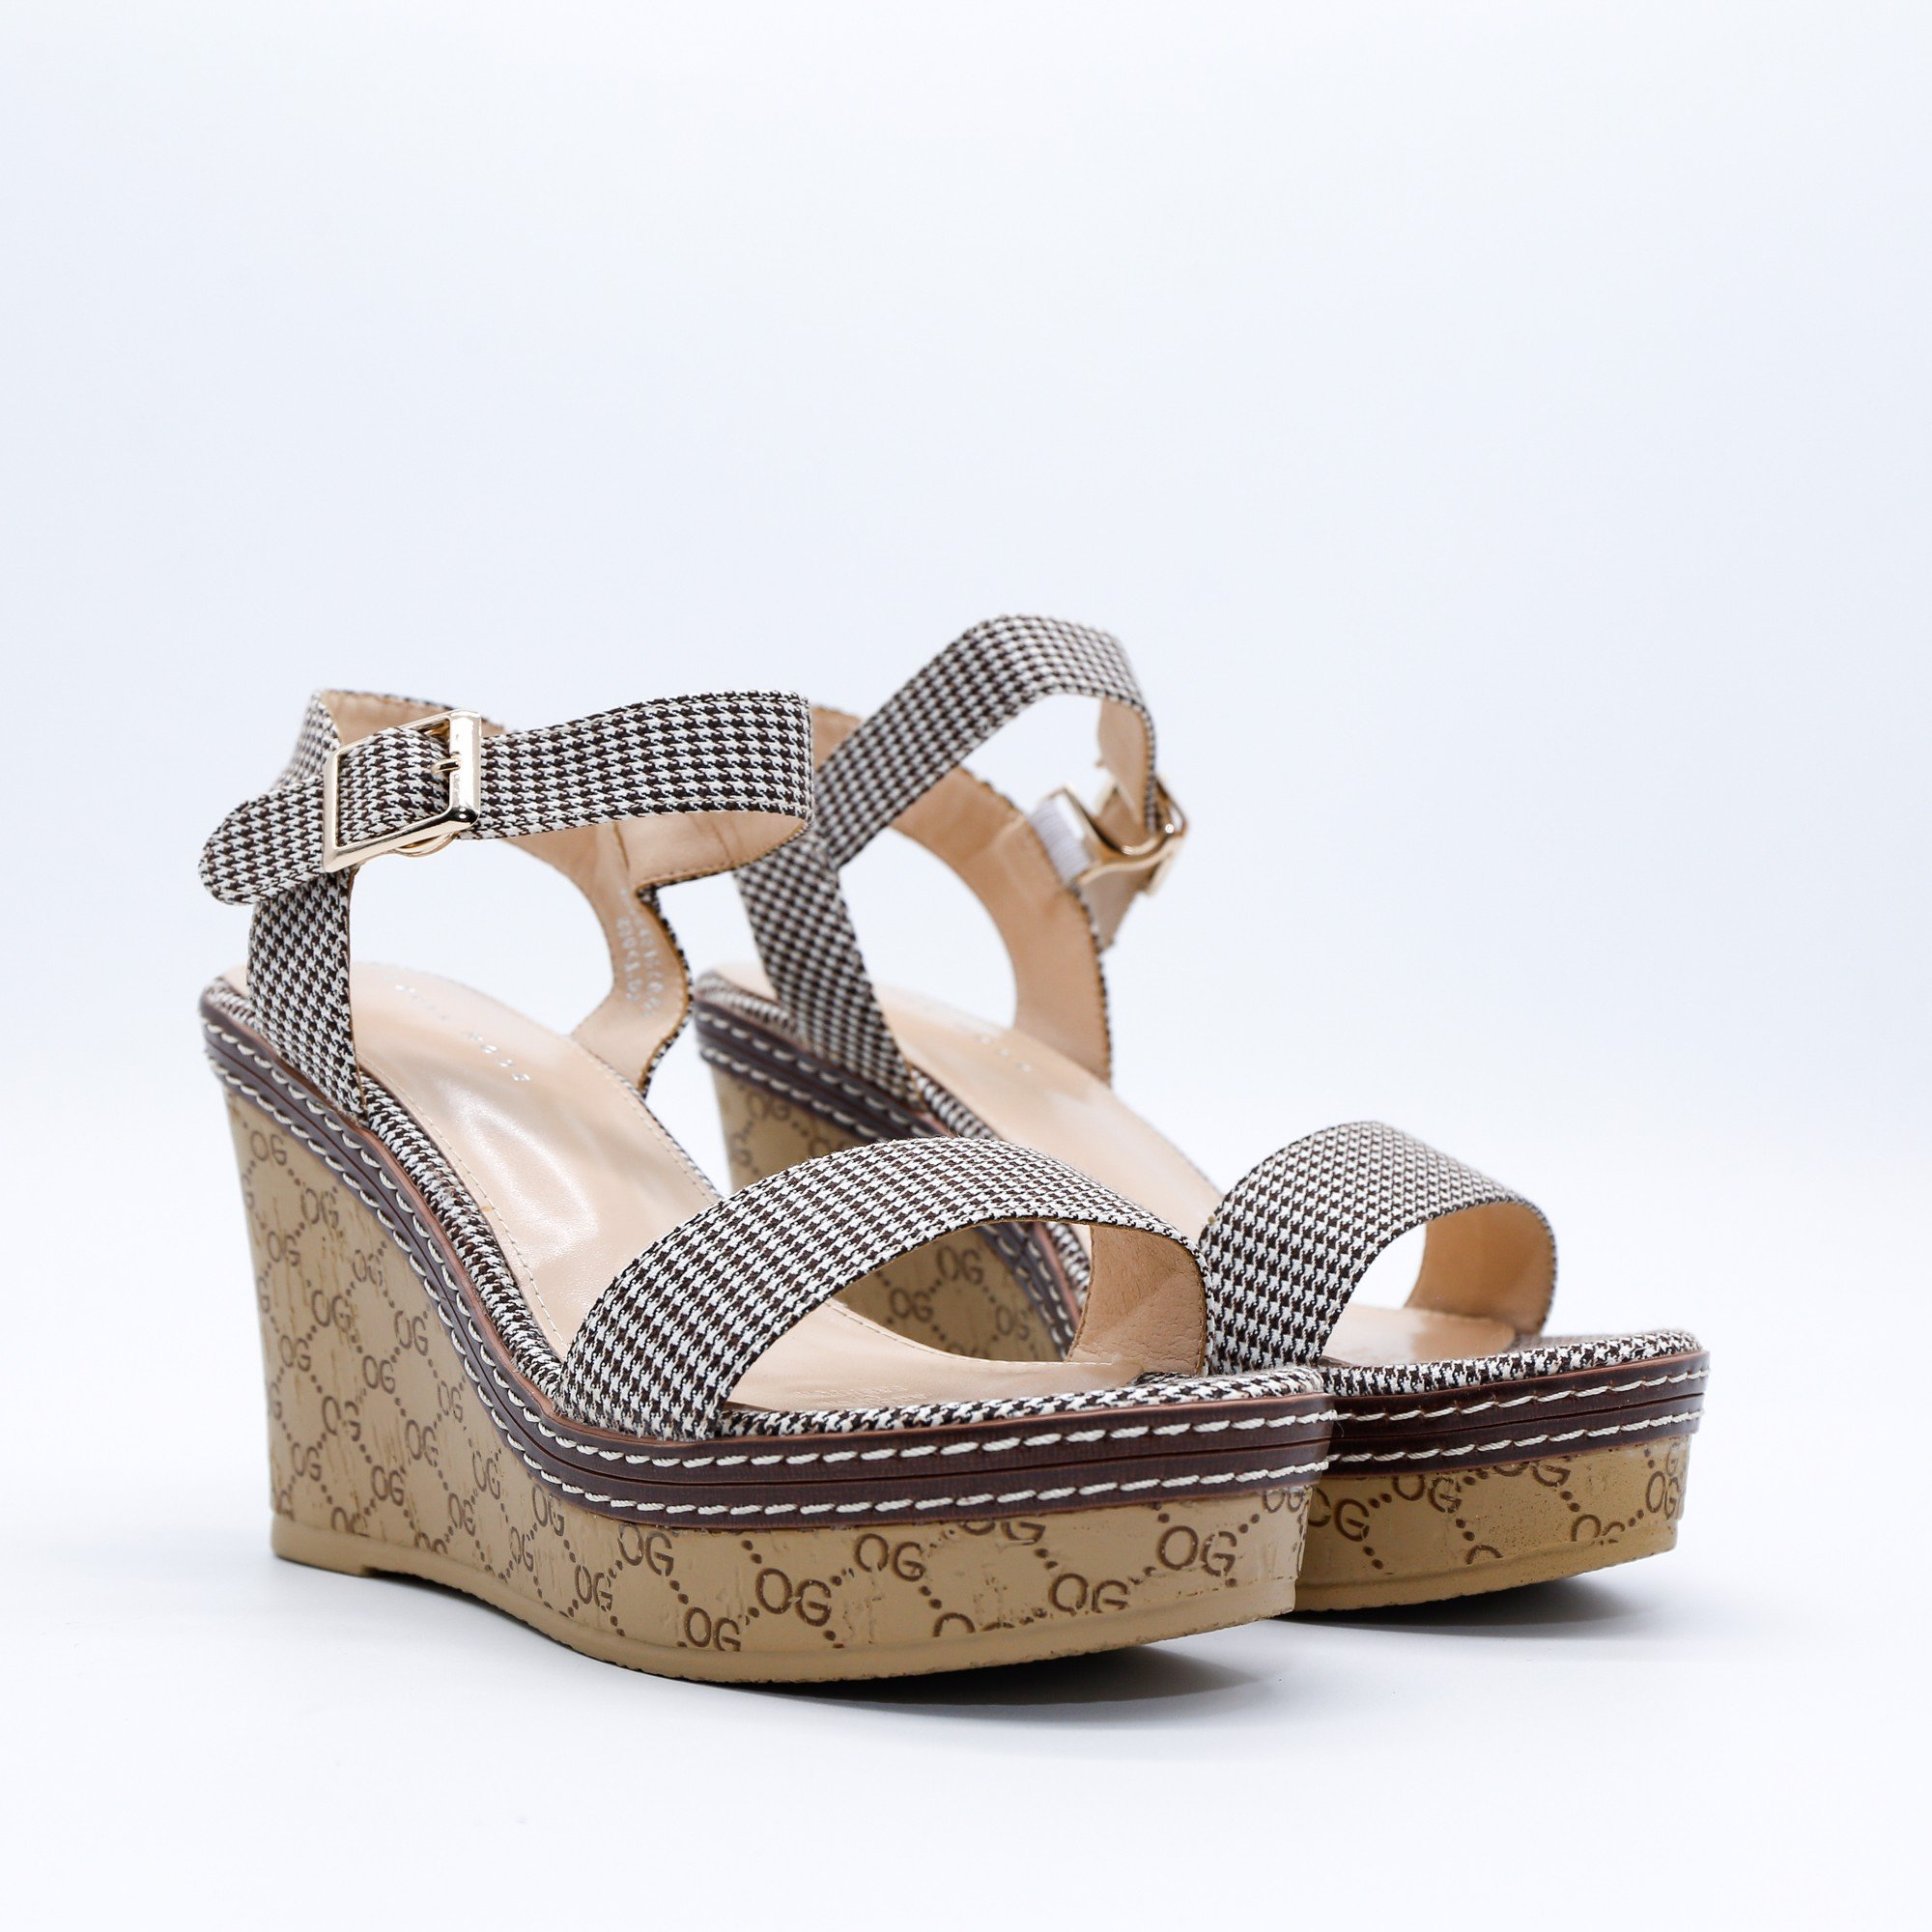 Sandals nữ Exull Mode 1816421680